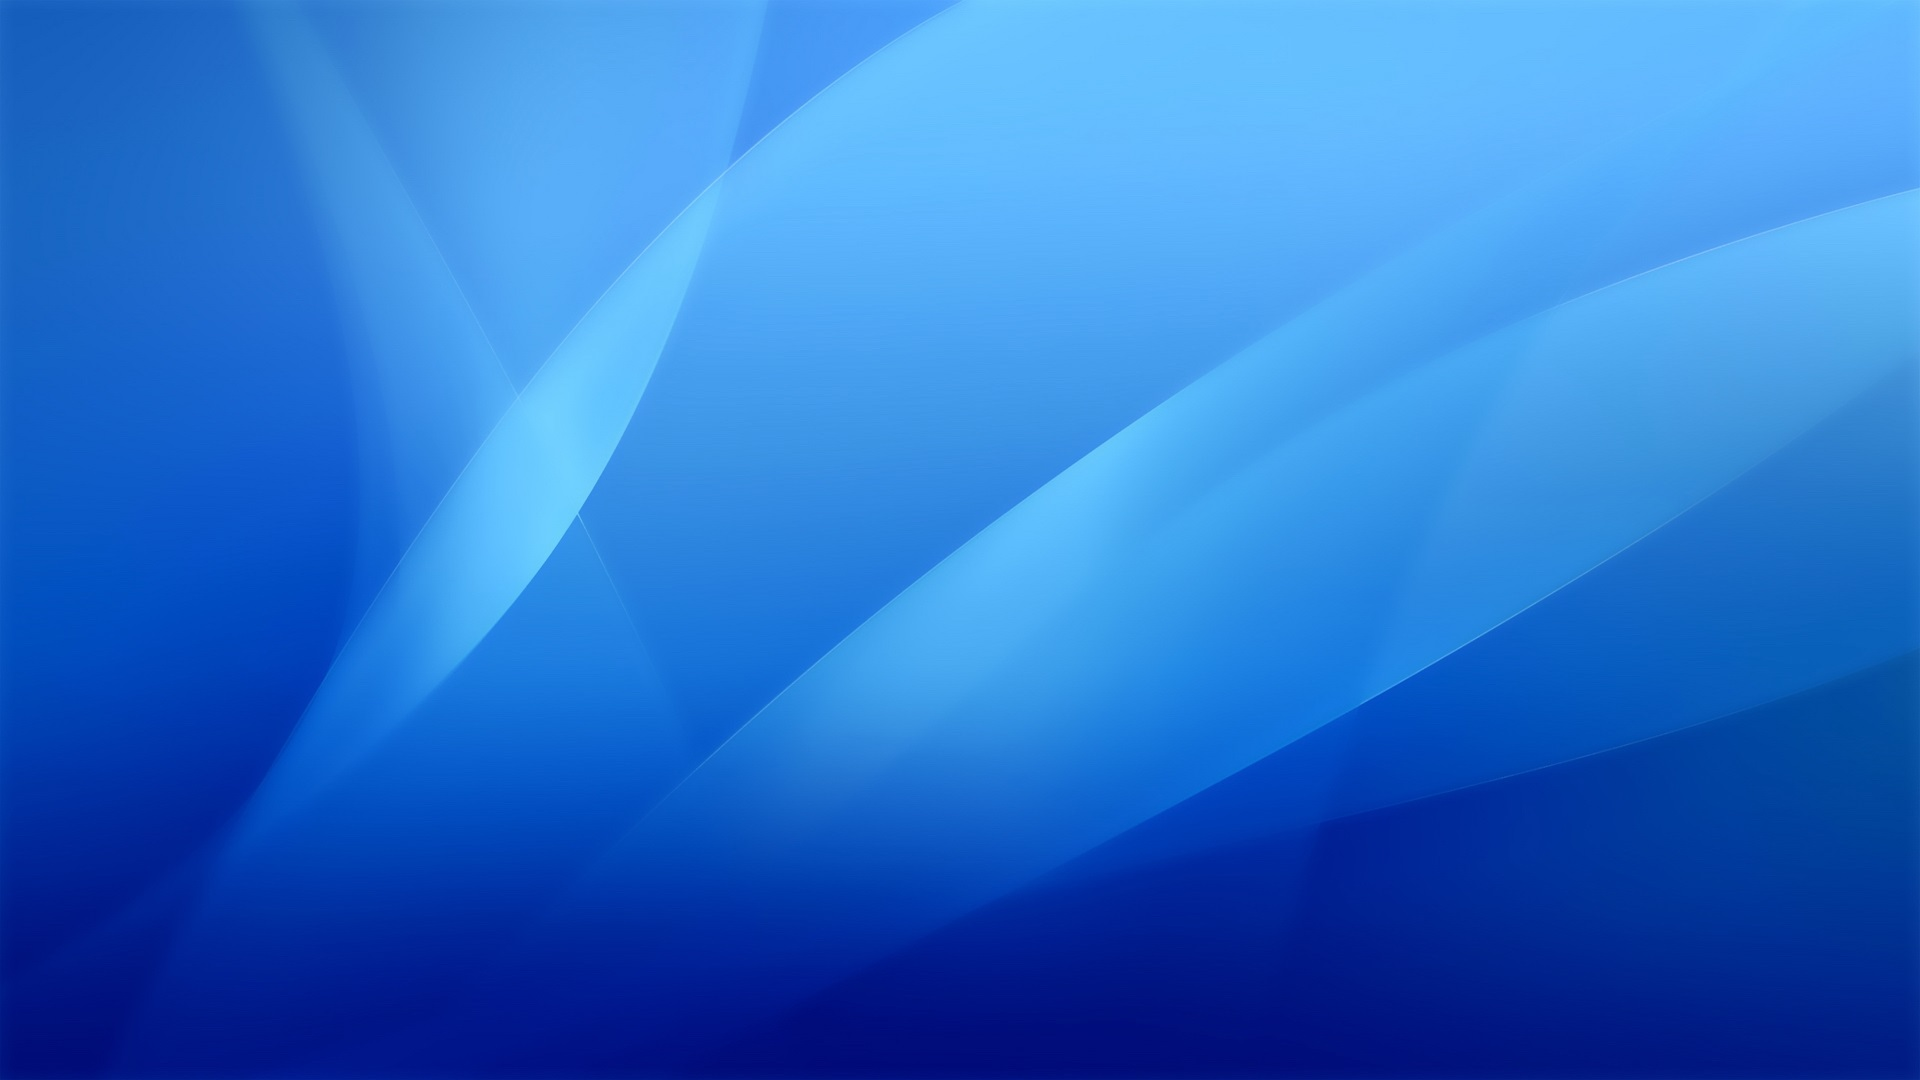 Wallpaper Blue Abstract Background, Curve 1920x1080 Full